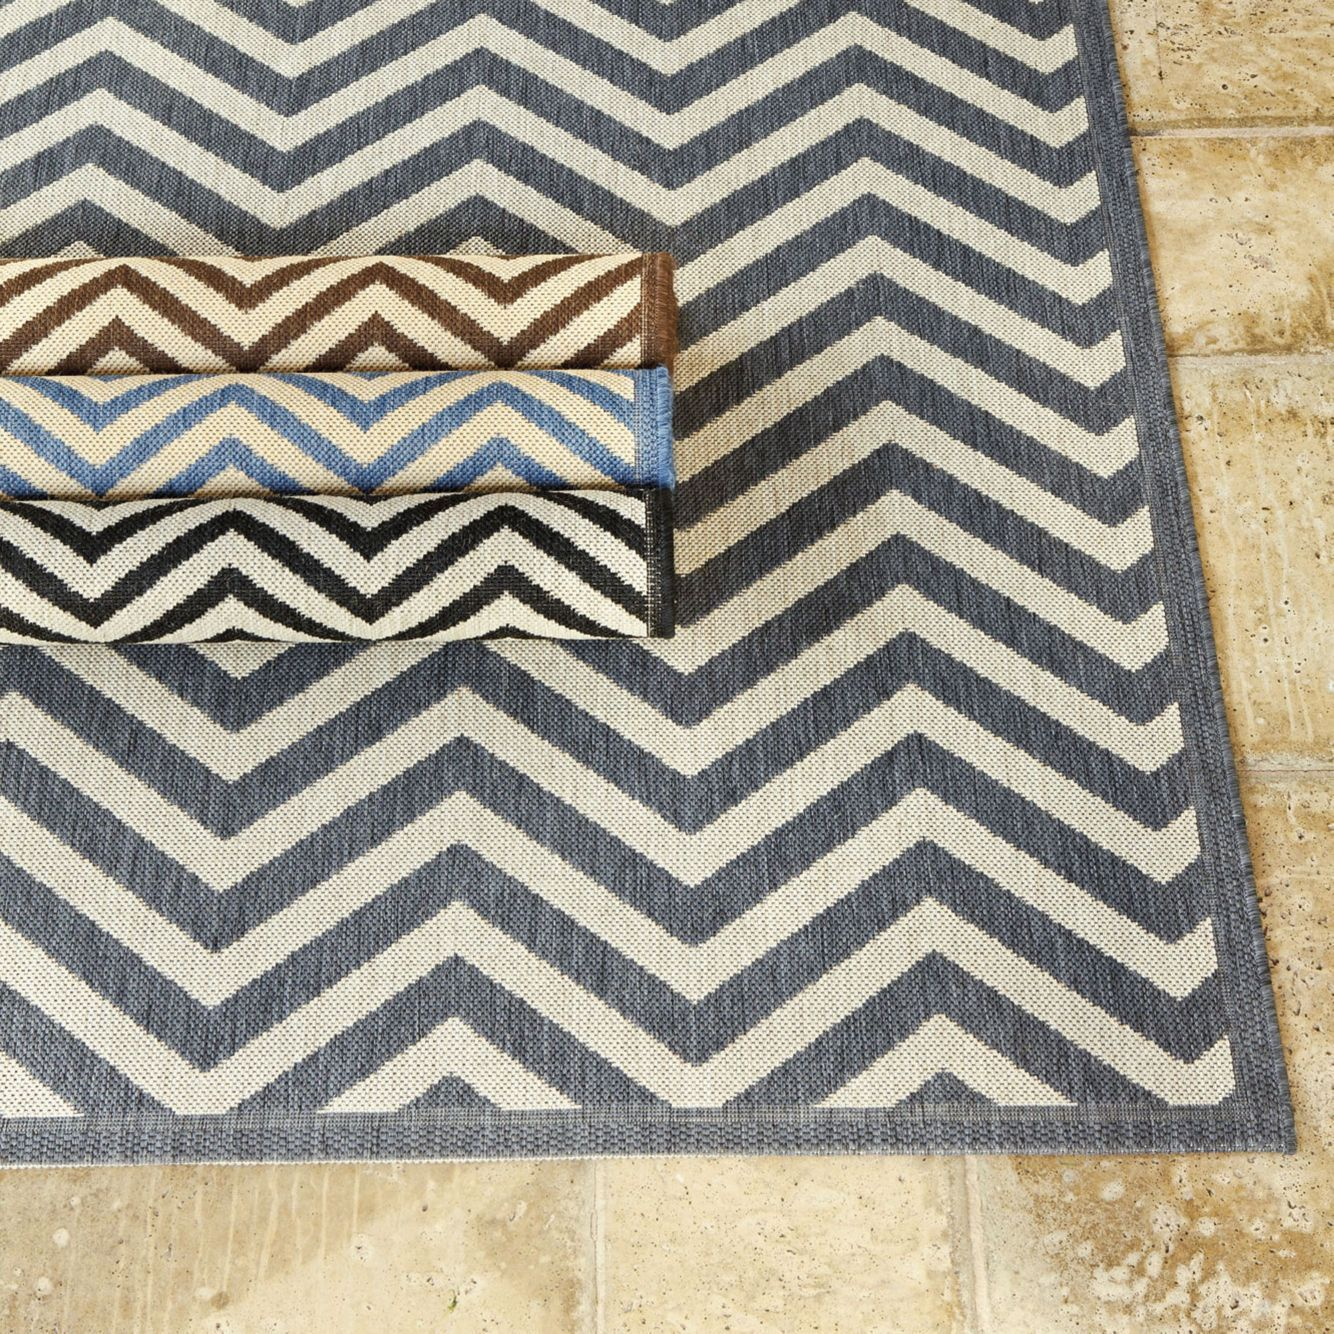 Chevron Stripe Indoor Outdoor Rug European Inspired Home Furnishings Ballard Designs